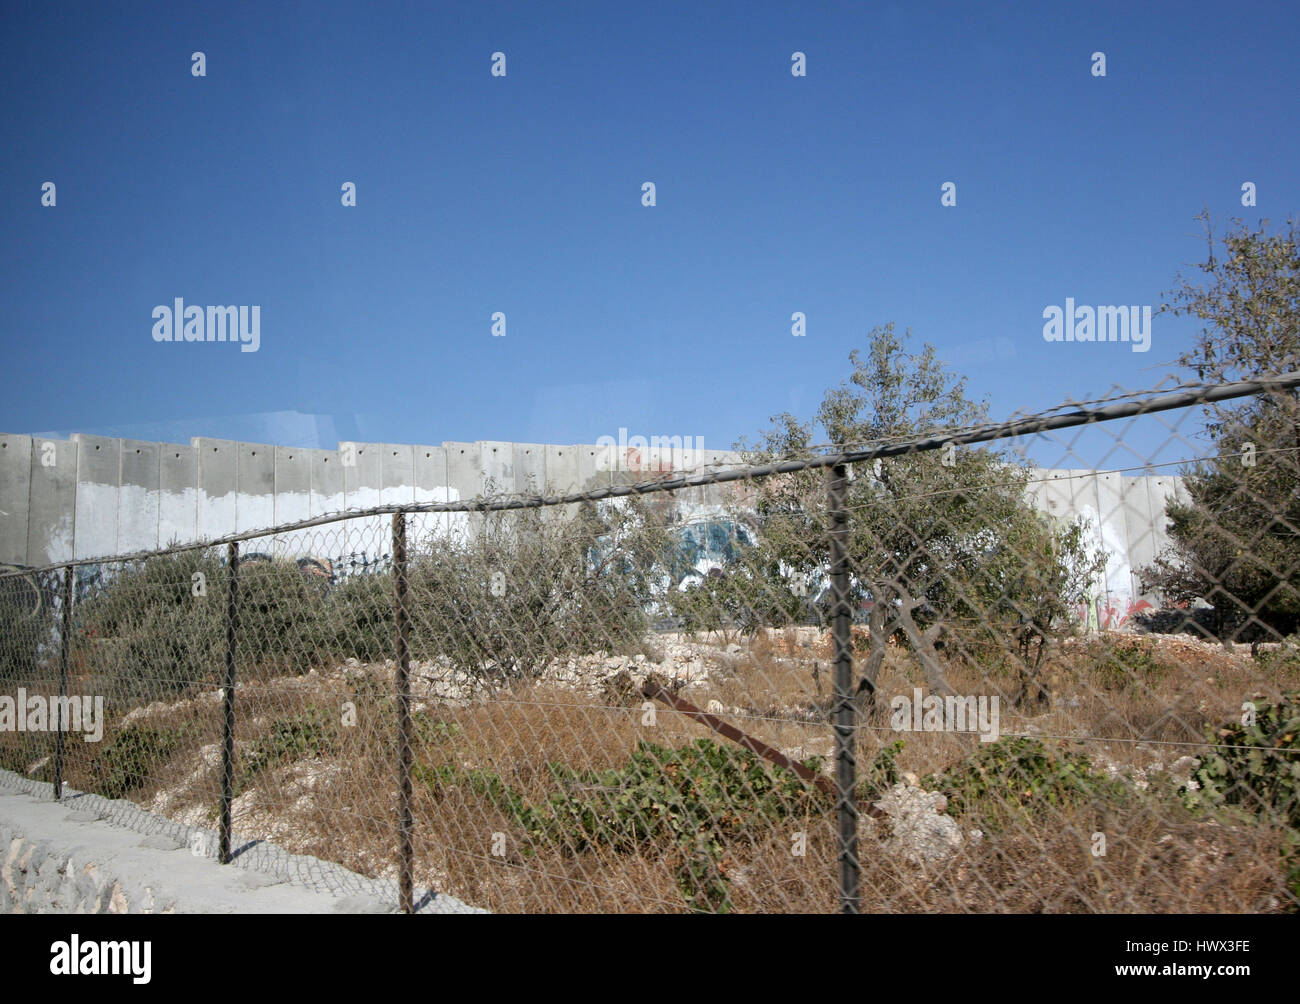 Israeli separation wall in the West Bank town of Bethlehem - Stock Image